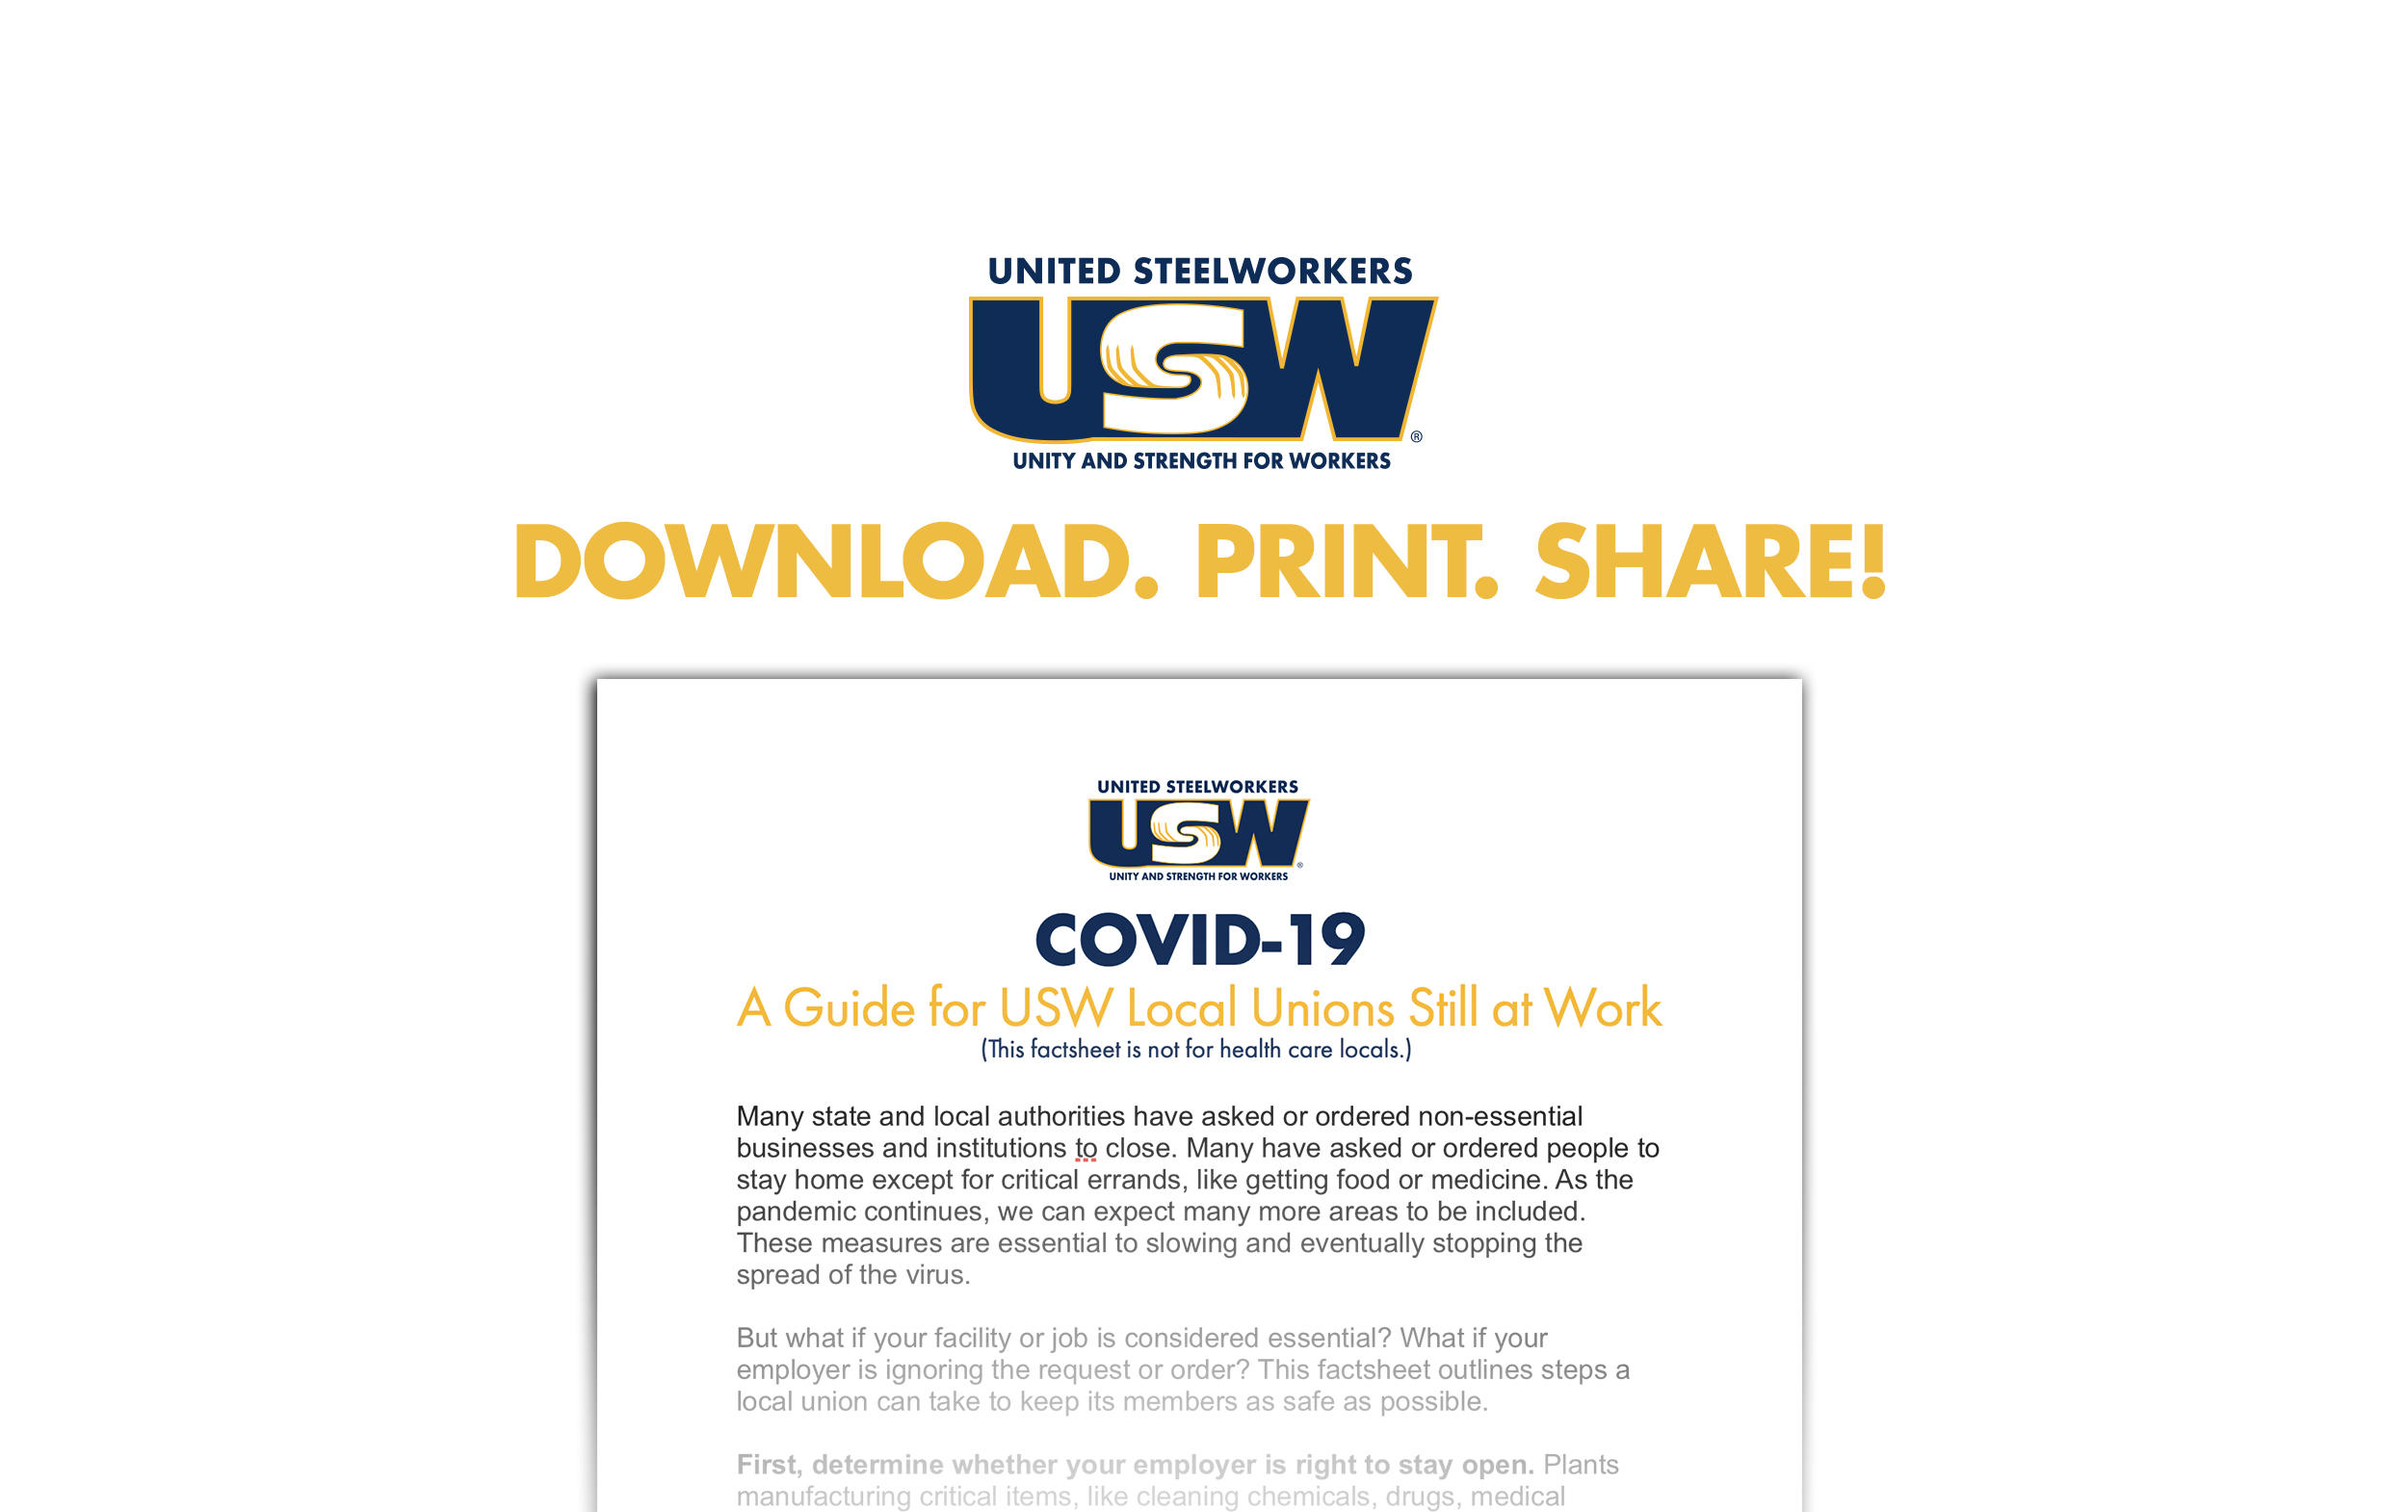 COVID-19: A Guide for USW Local Unions Still at Work